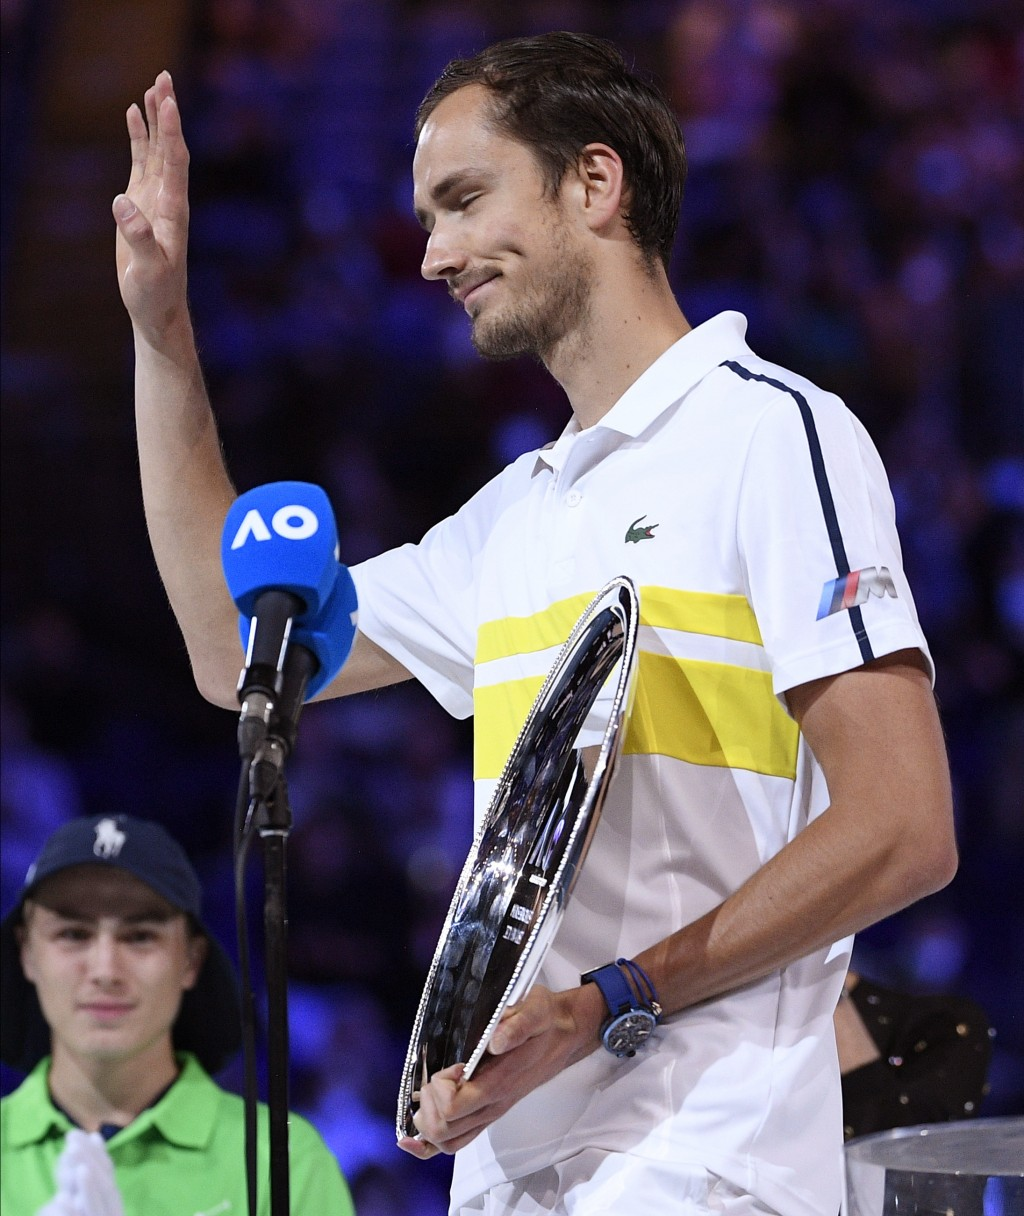 Russia's Daniil Medvedev waves after receiving his trophy for runner-up after losing to Serbia's Novak Djokovic in the men's singles final at the Aust...